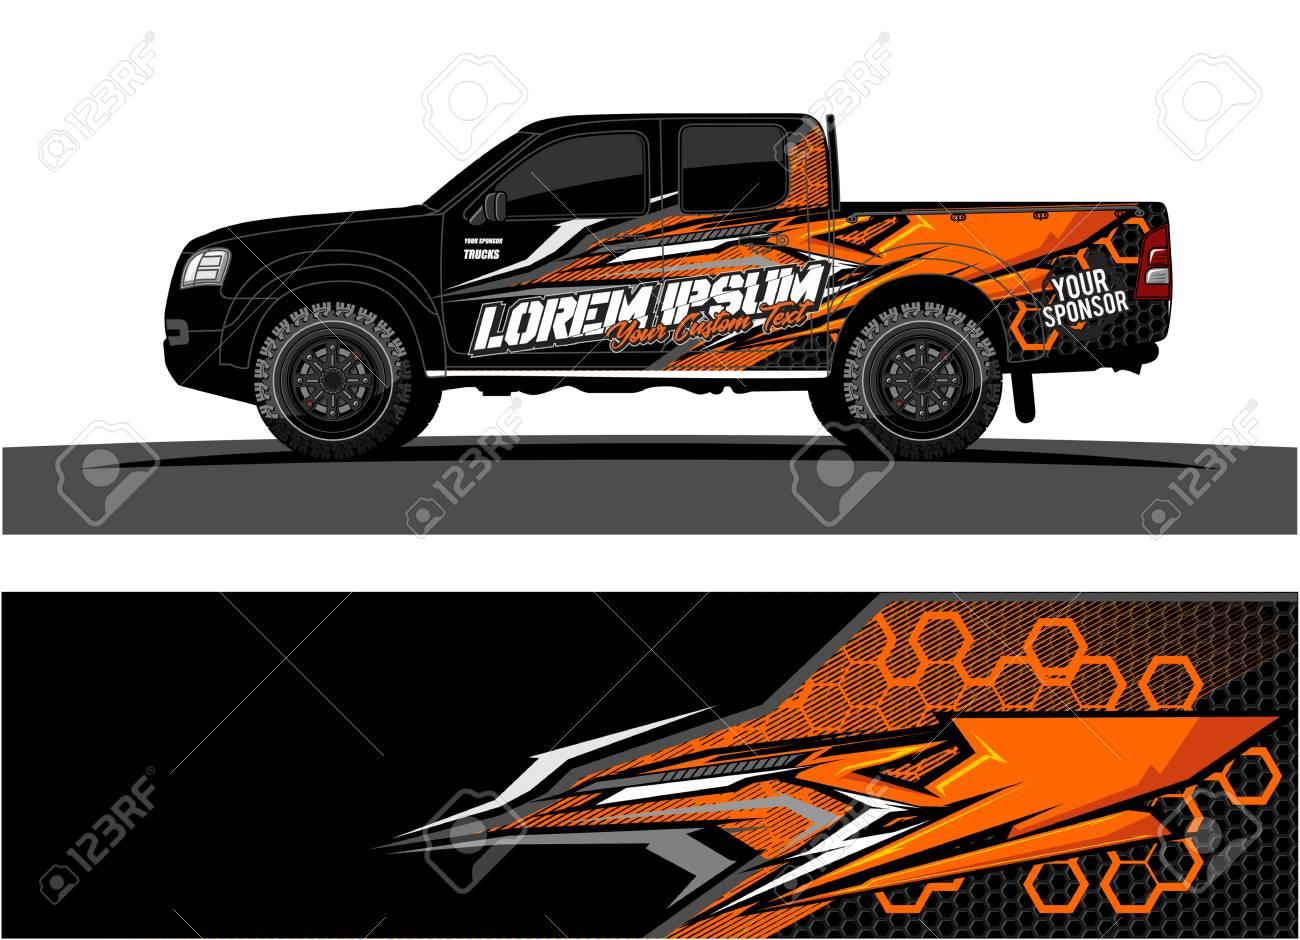 Abstract racing vector background for truck car and vehicles wrap design stock vector 100588866